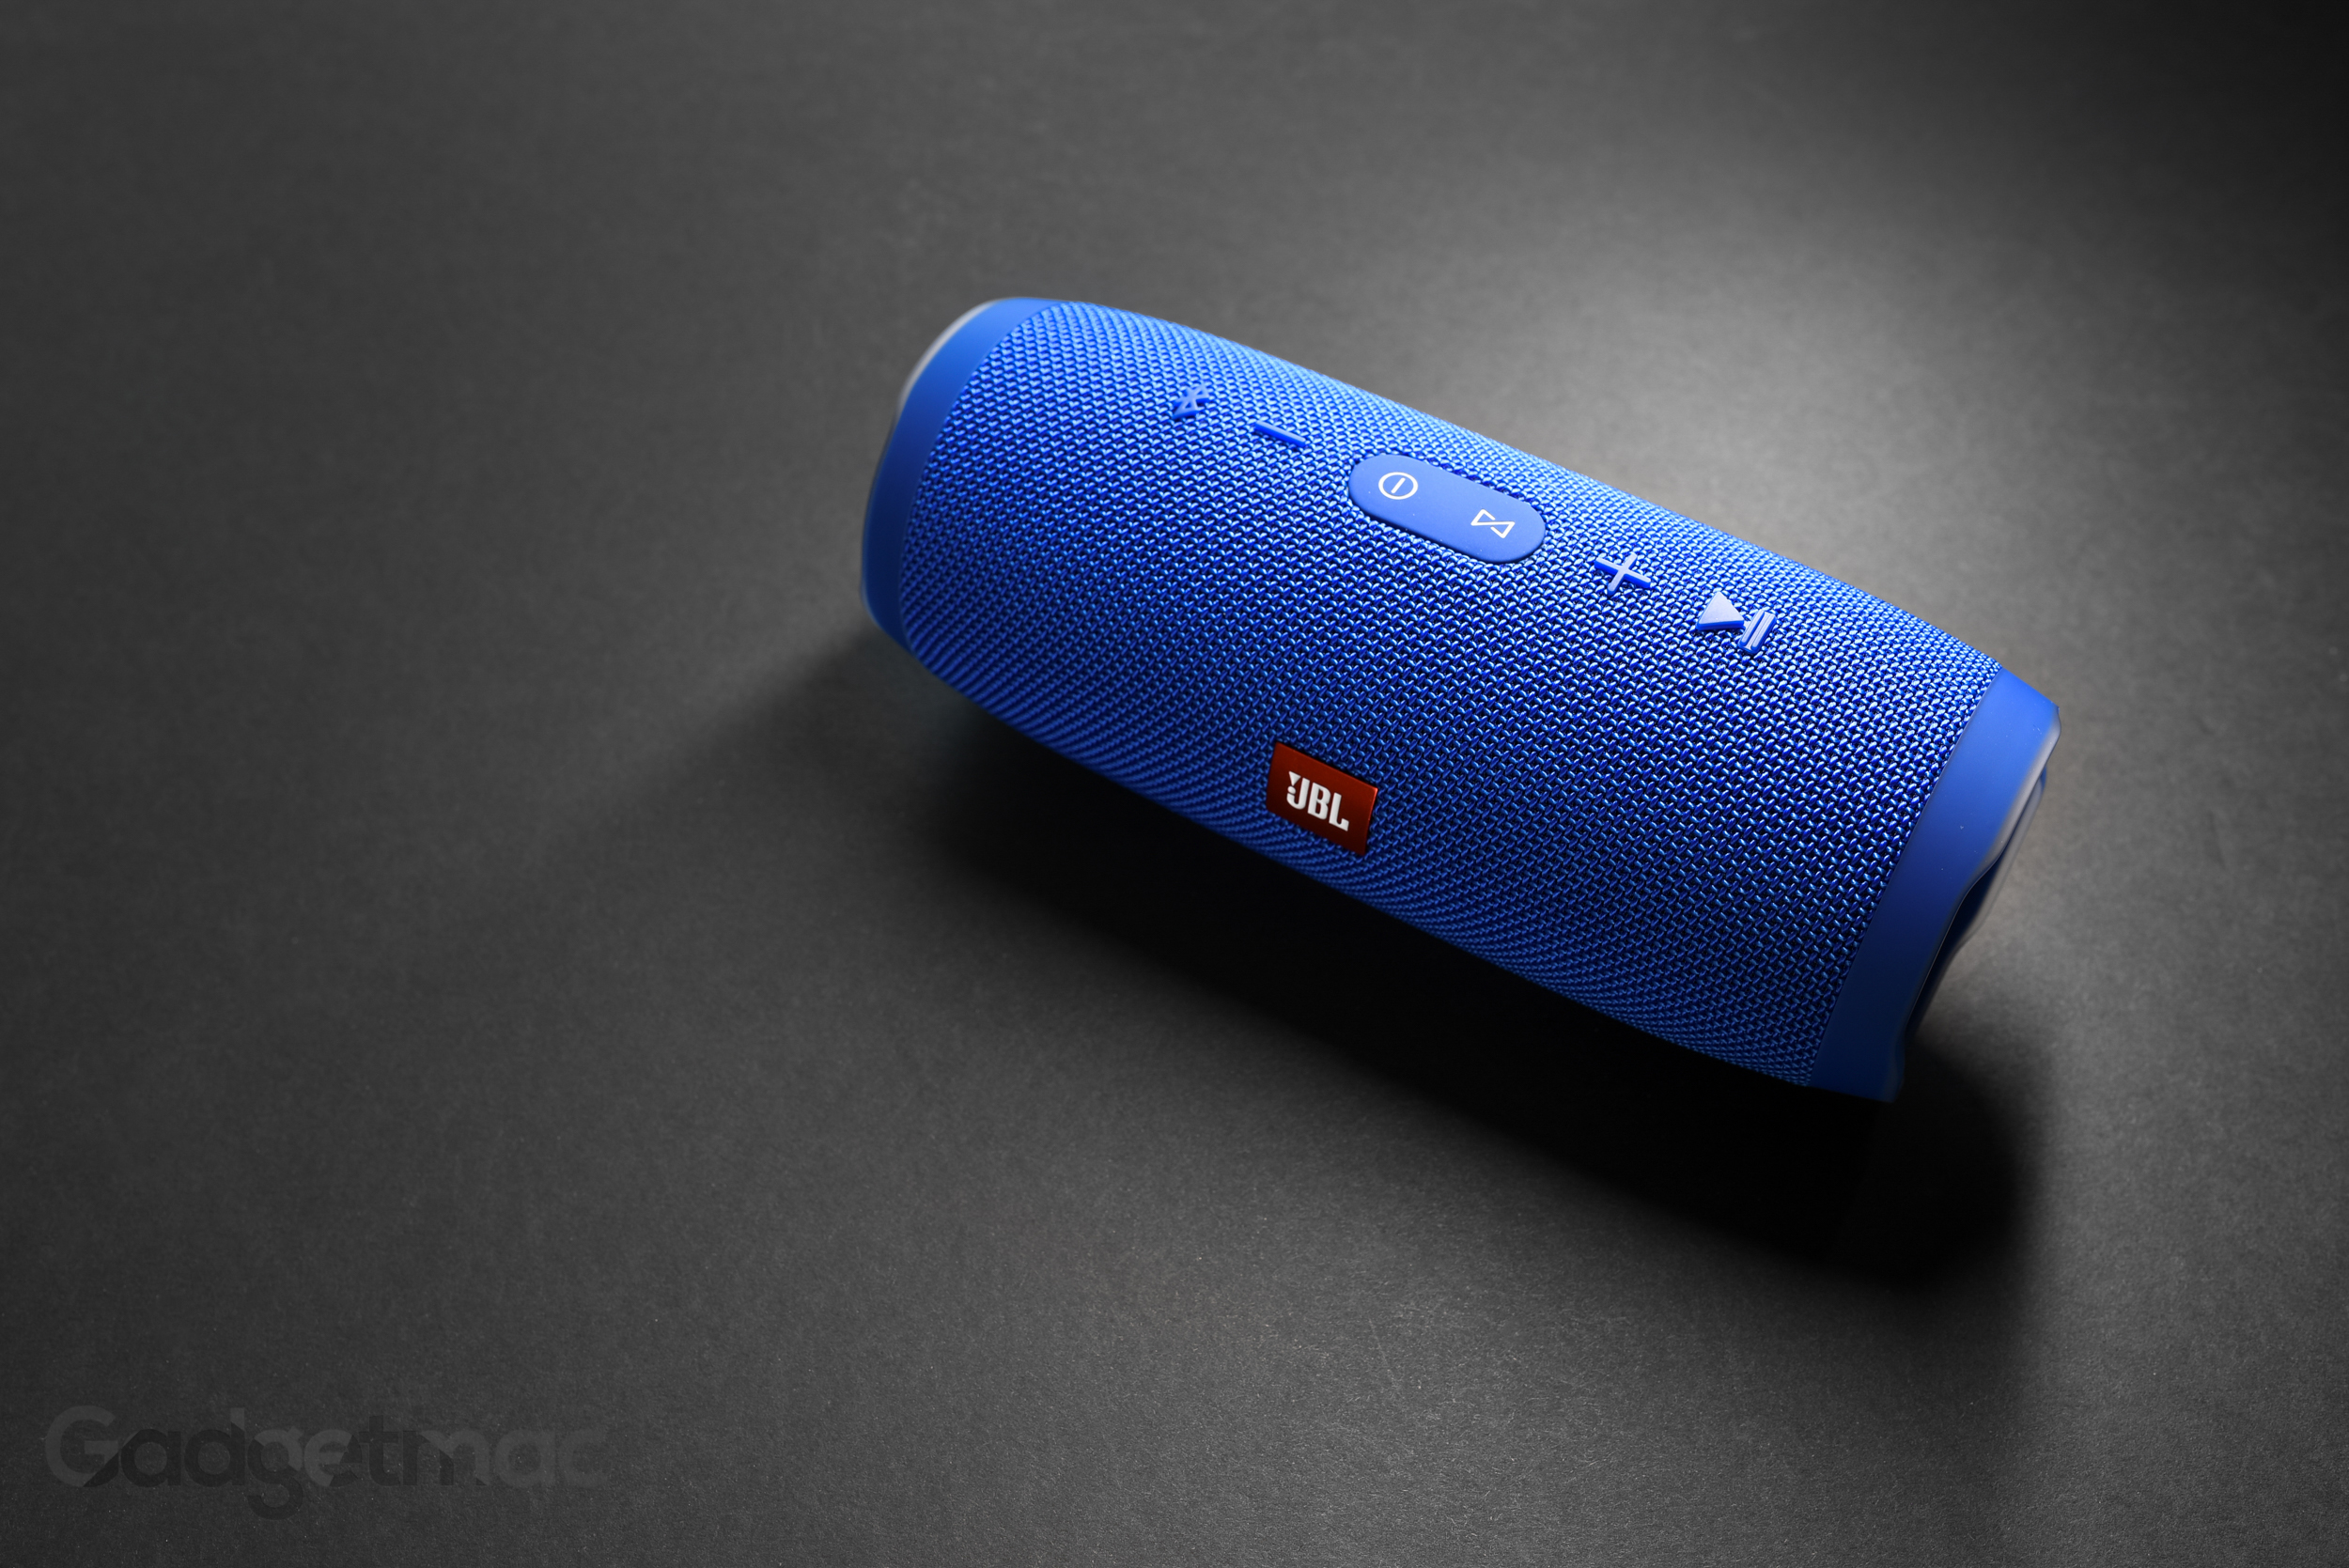 jbl-charge-3-portable-wireless-speaker-hero.jpg